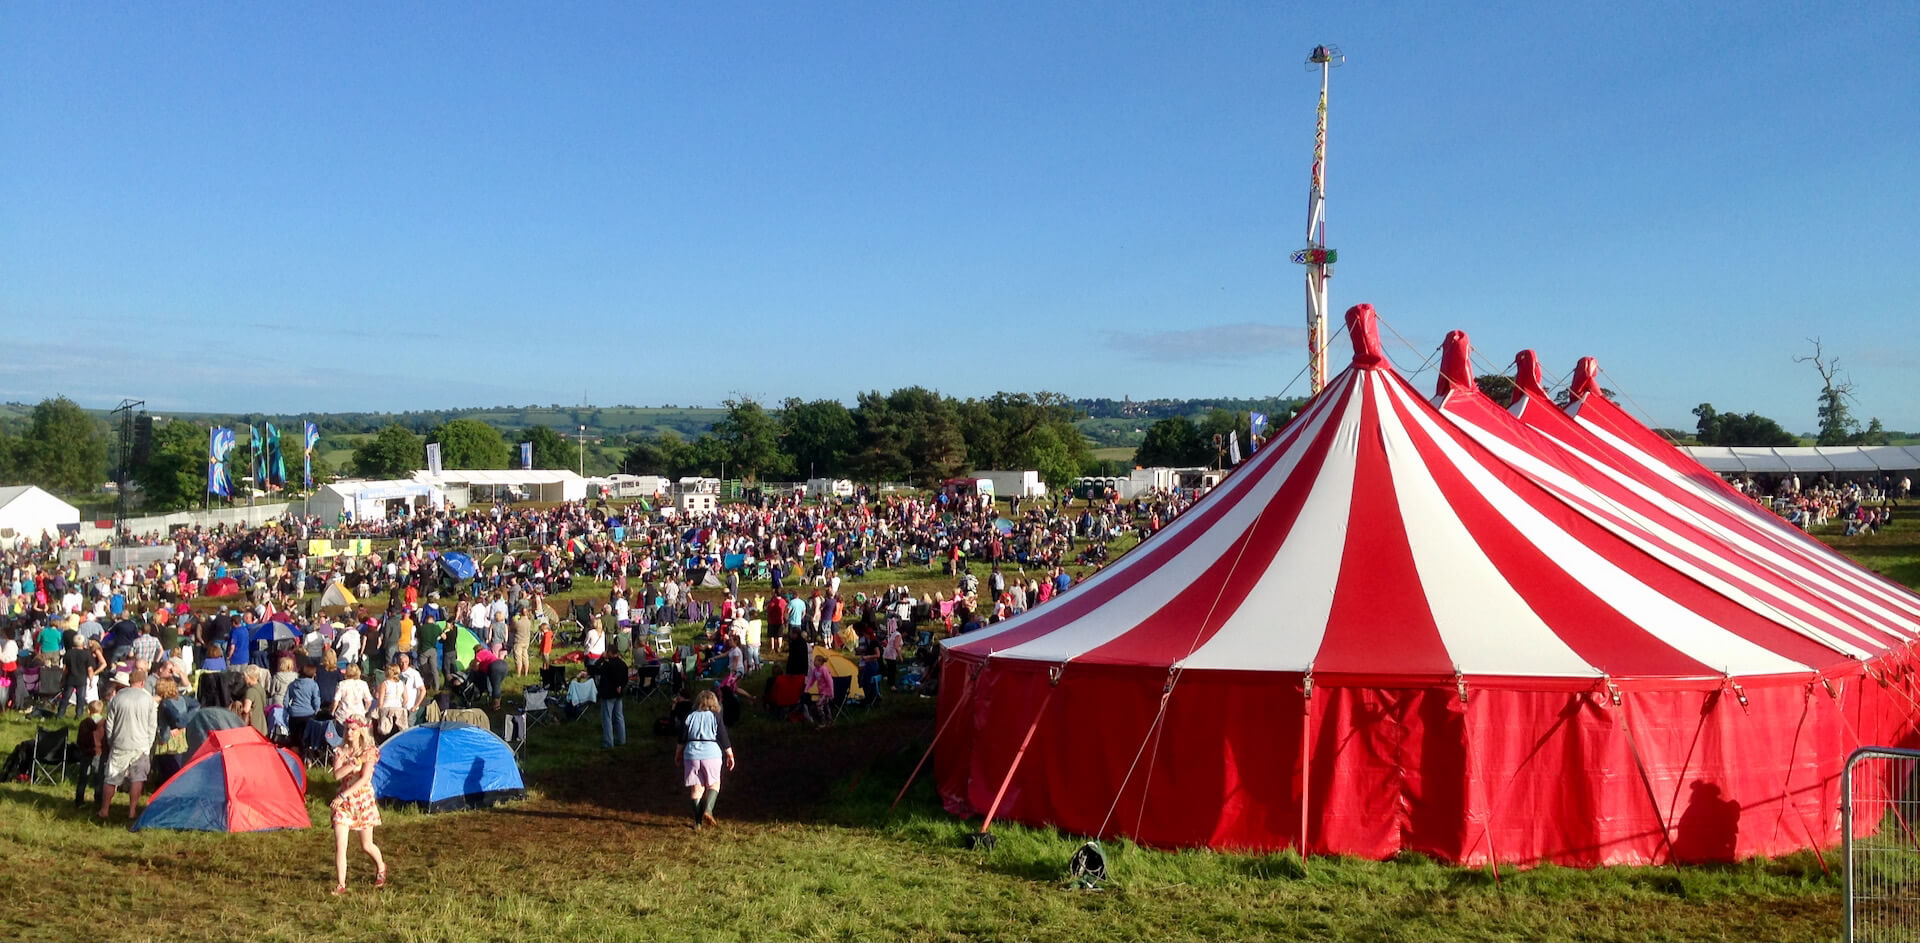 Festival marquee supplier